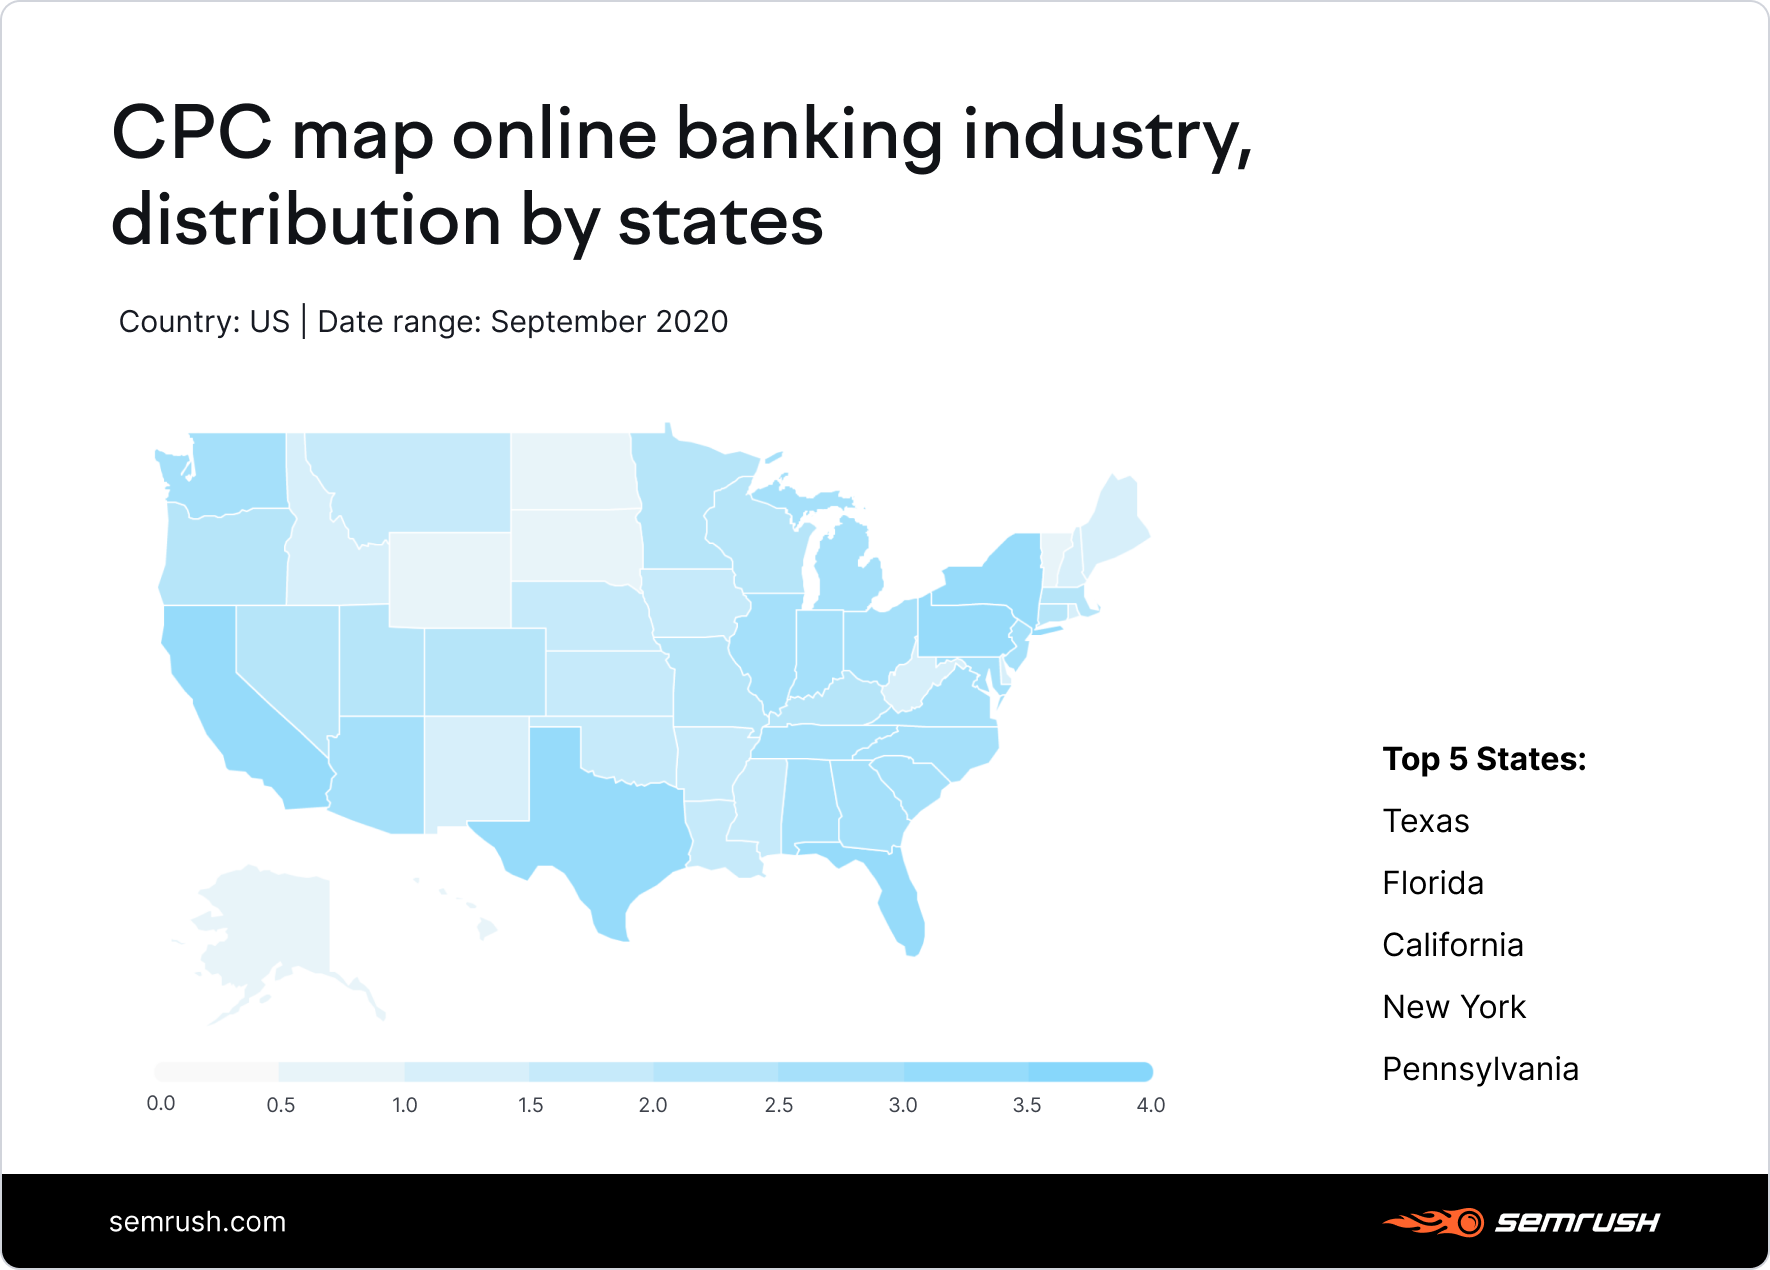 cost per click in online banking industry in the US, distribution by states